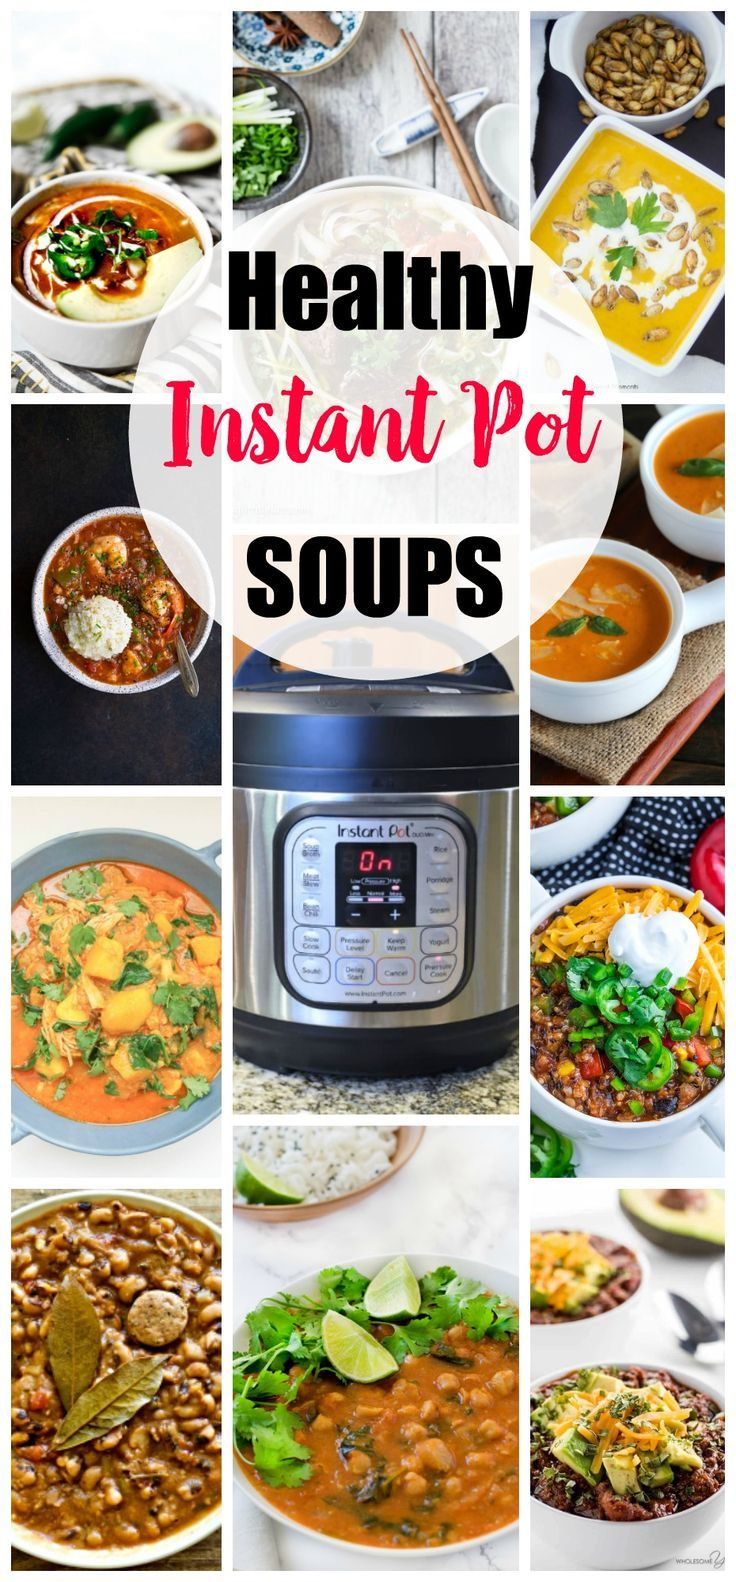 Healthy Instant Pot Recipes -Soups recipes http://eatdojo.com/healthy-soup-recipes-for-weight-loss-easy-yummy/